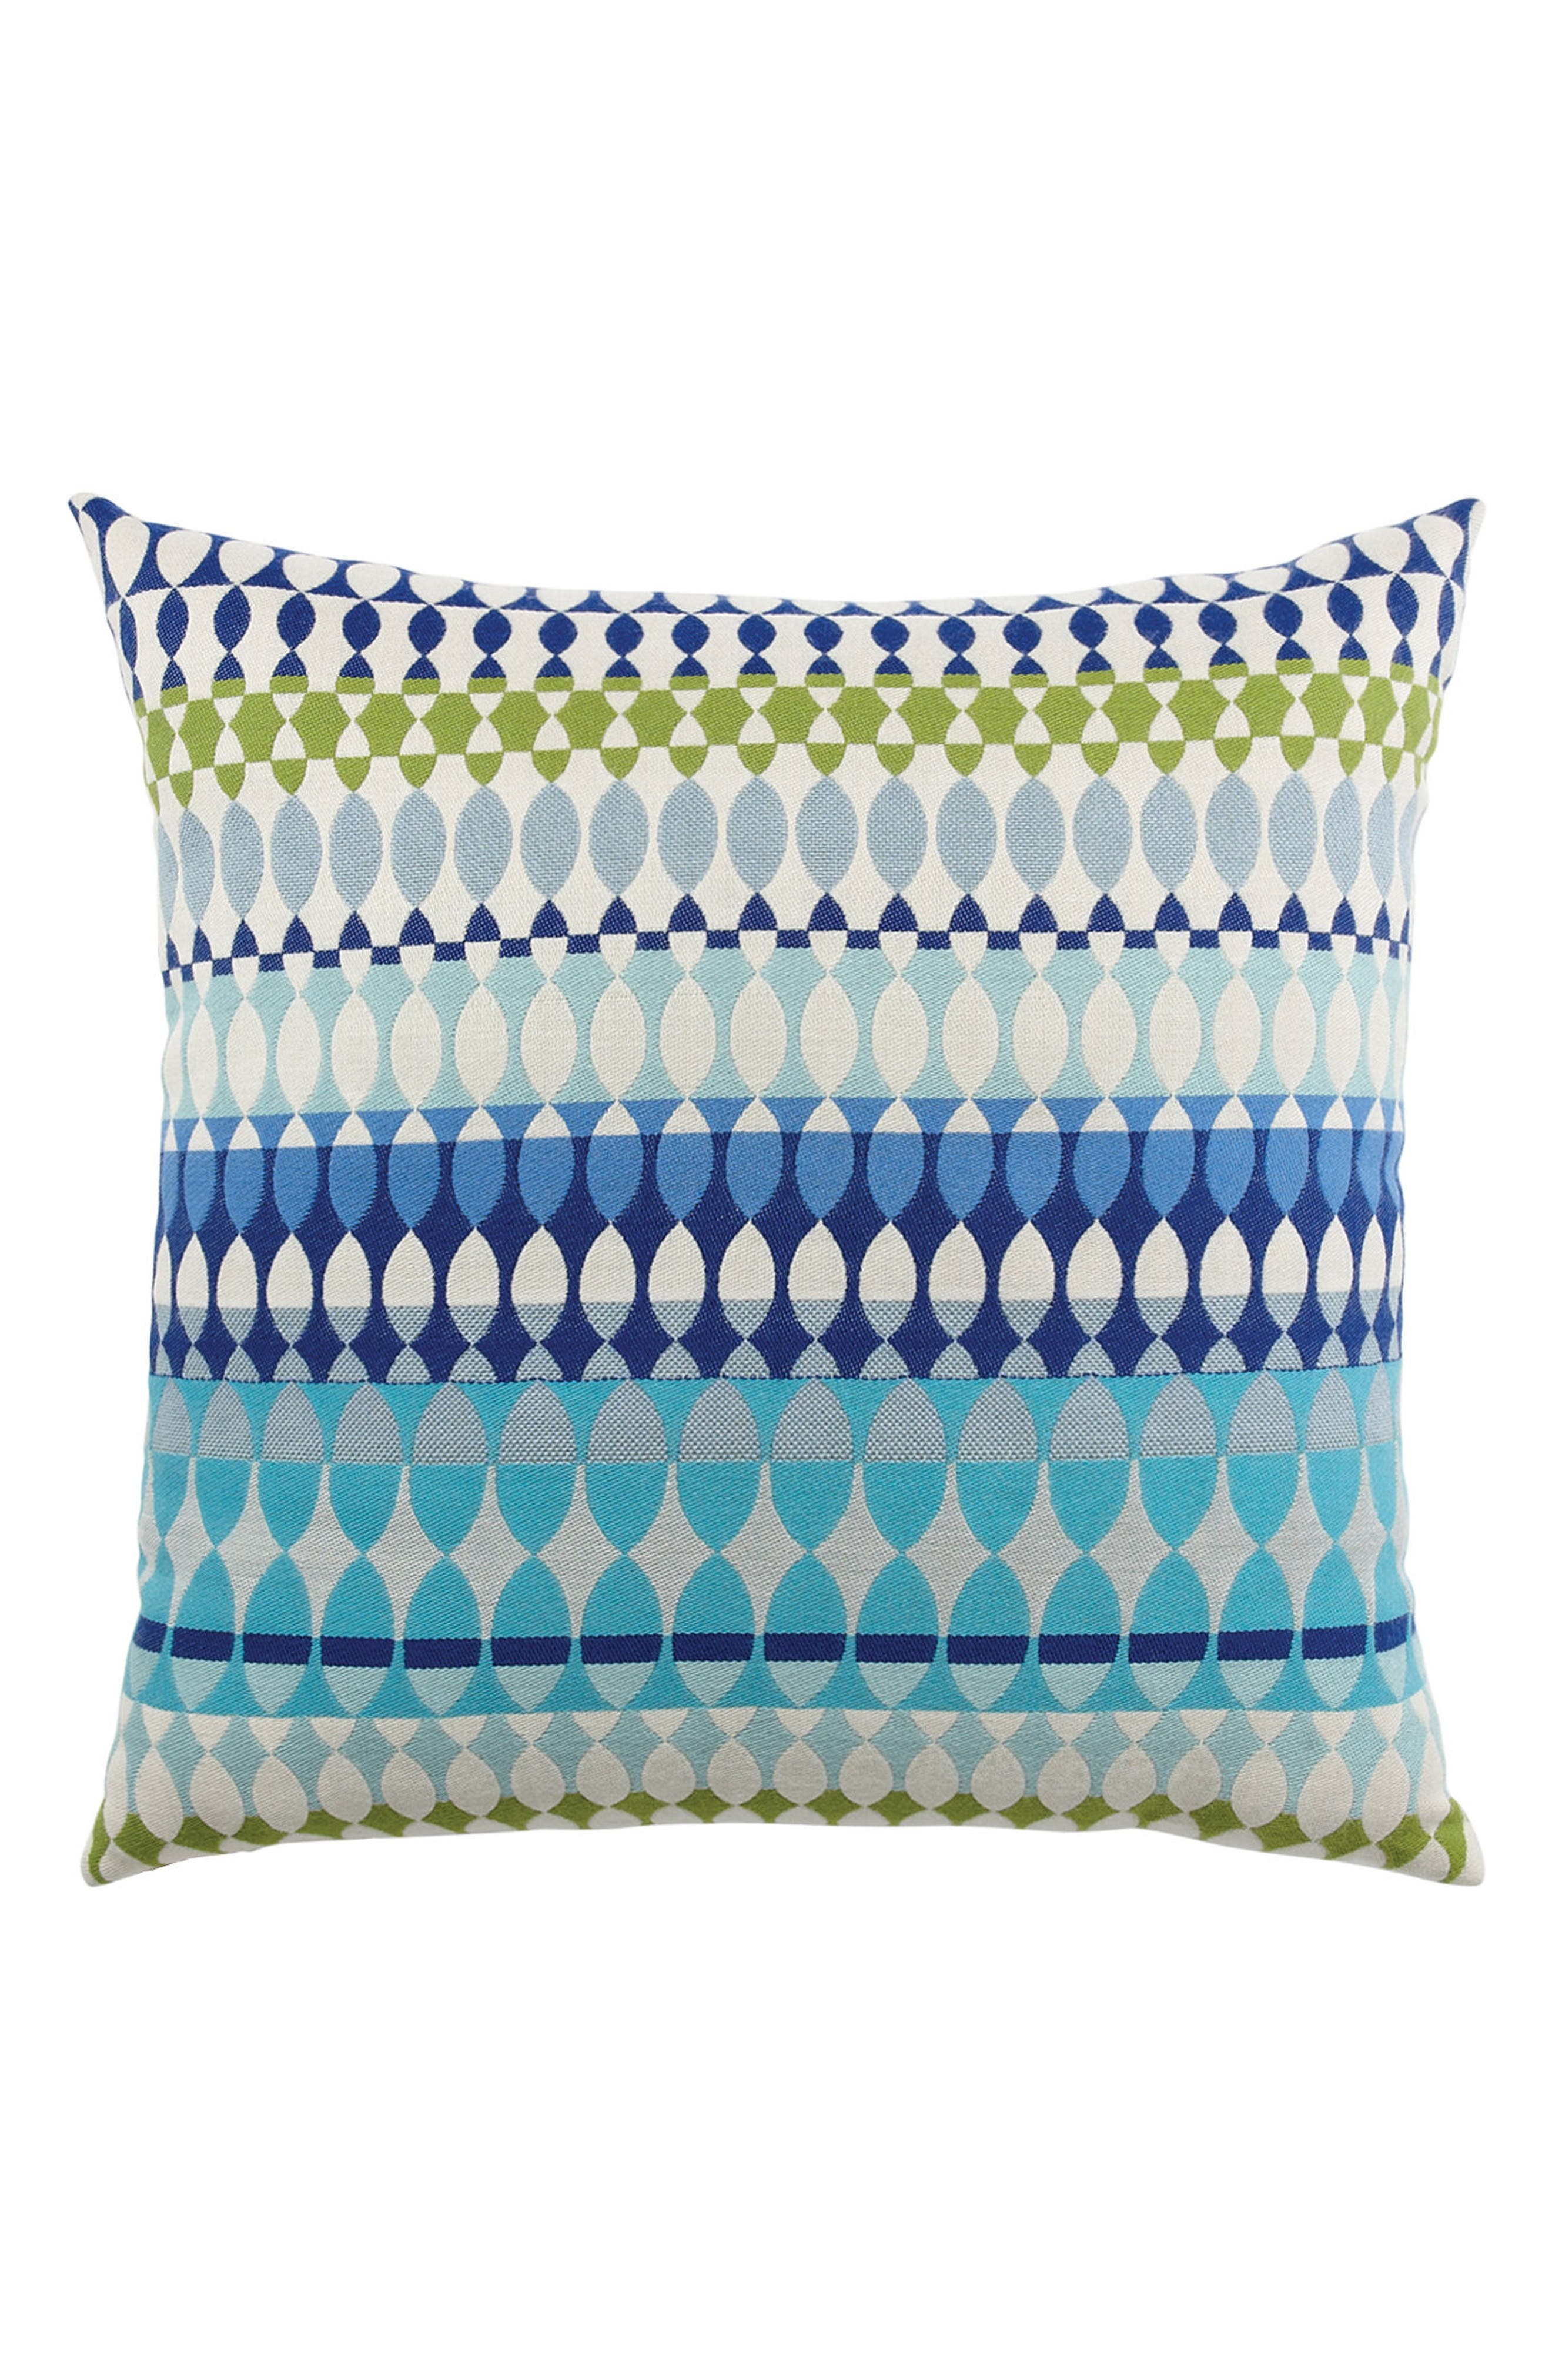 Modern Oval Ocean Indoor/Outdoor Accent Pillow,                             Main thumbnail 1, color,                             BLUE MULTI